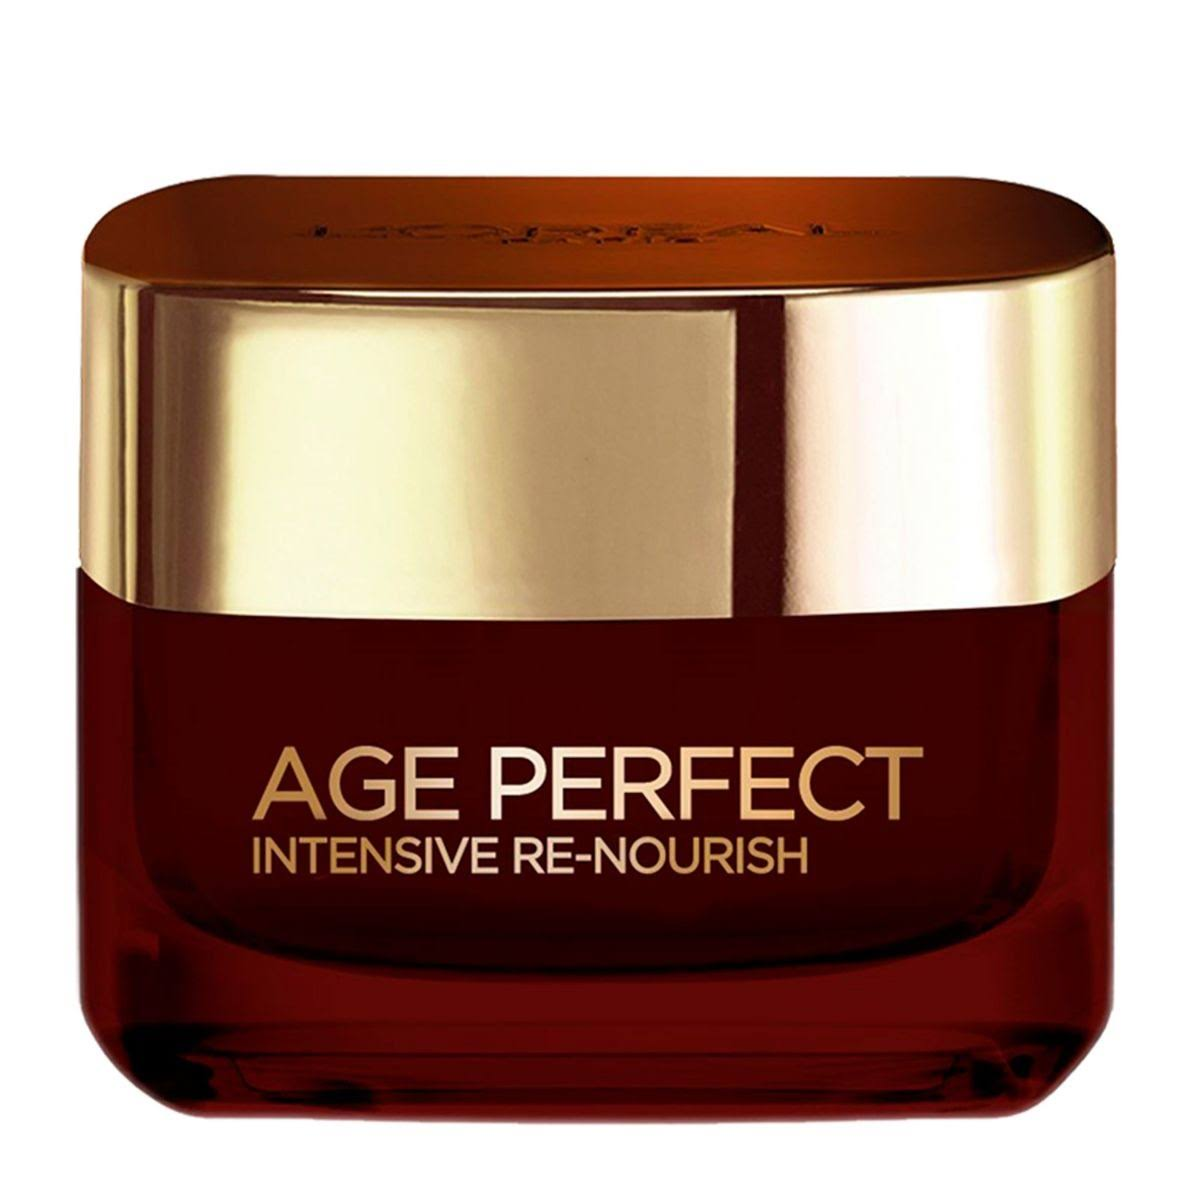 L'Oreal Age Perfect Intensive Renourish Day Cream - Manuka Honey, 50ml